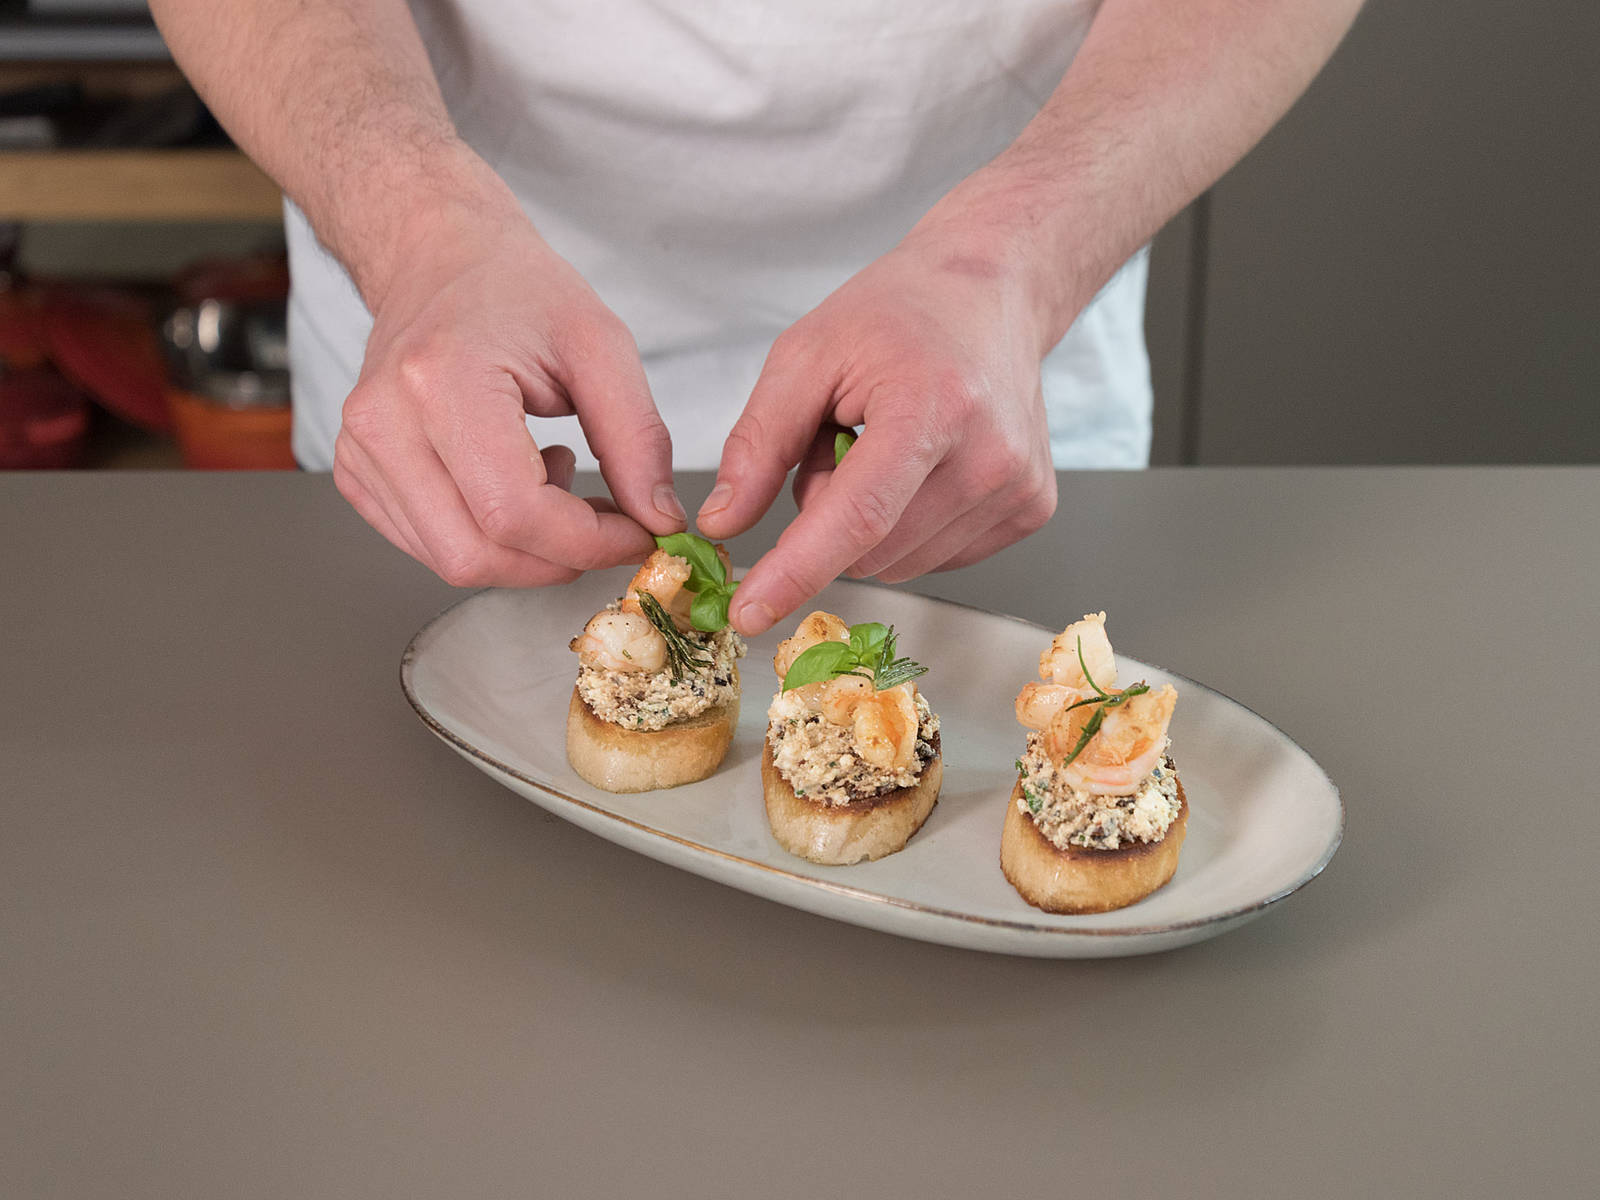 Spread feta cream on toasted baguette slices, top with fried prawns, and serve with more basil. Enjoy!